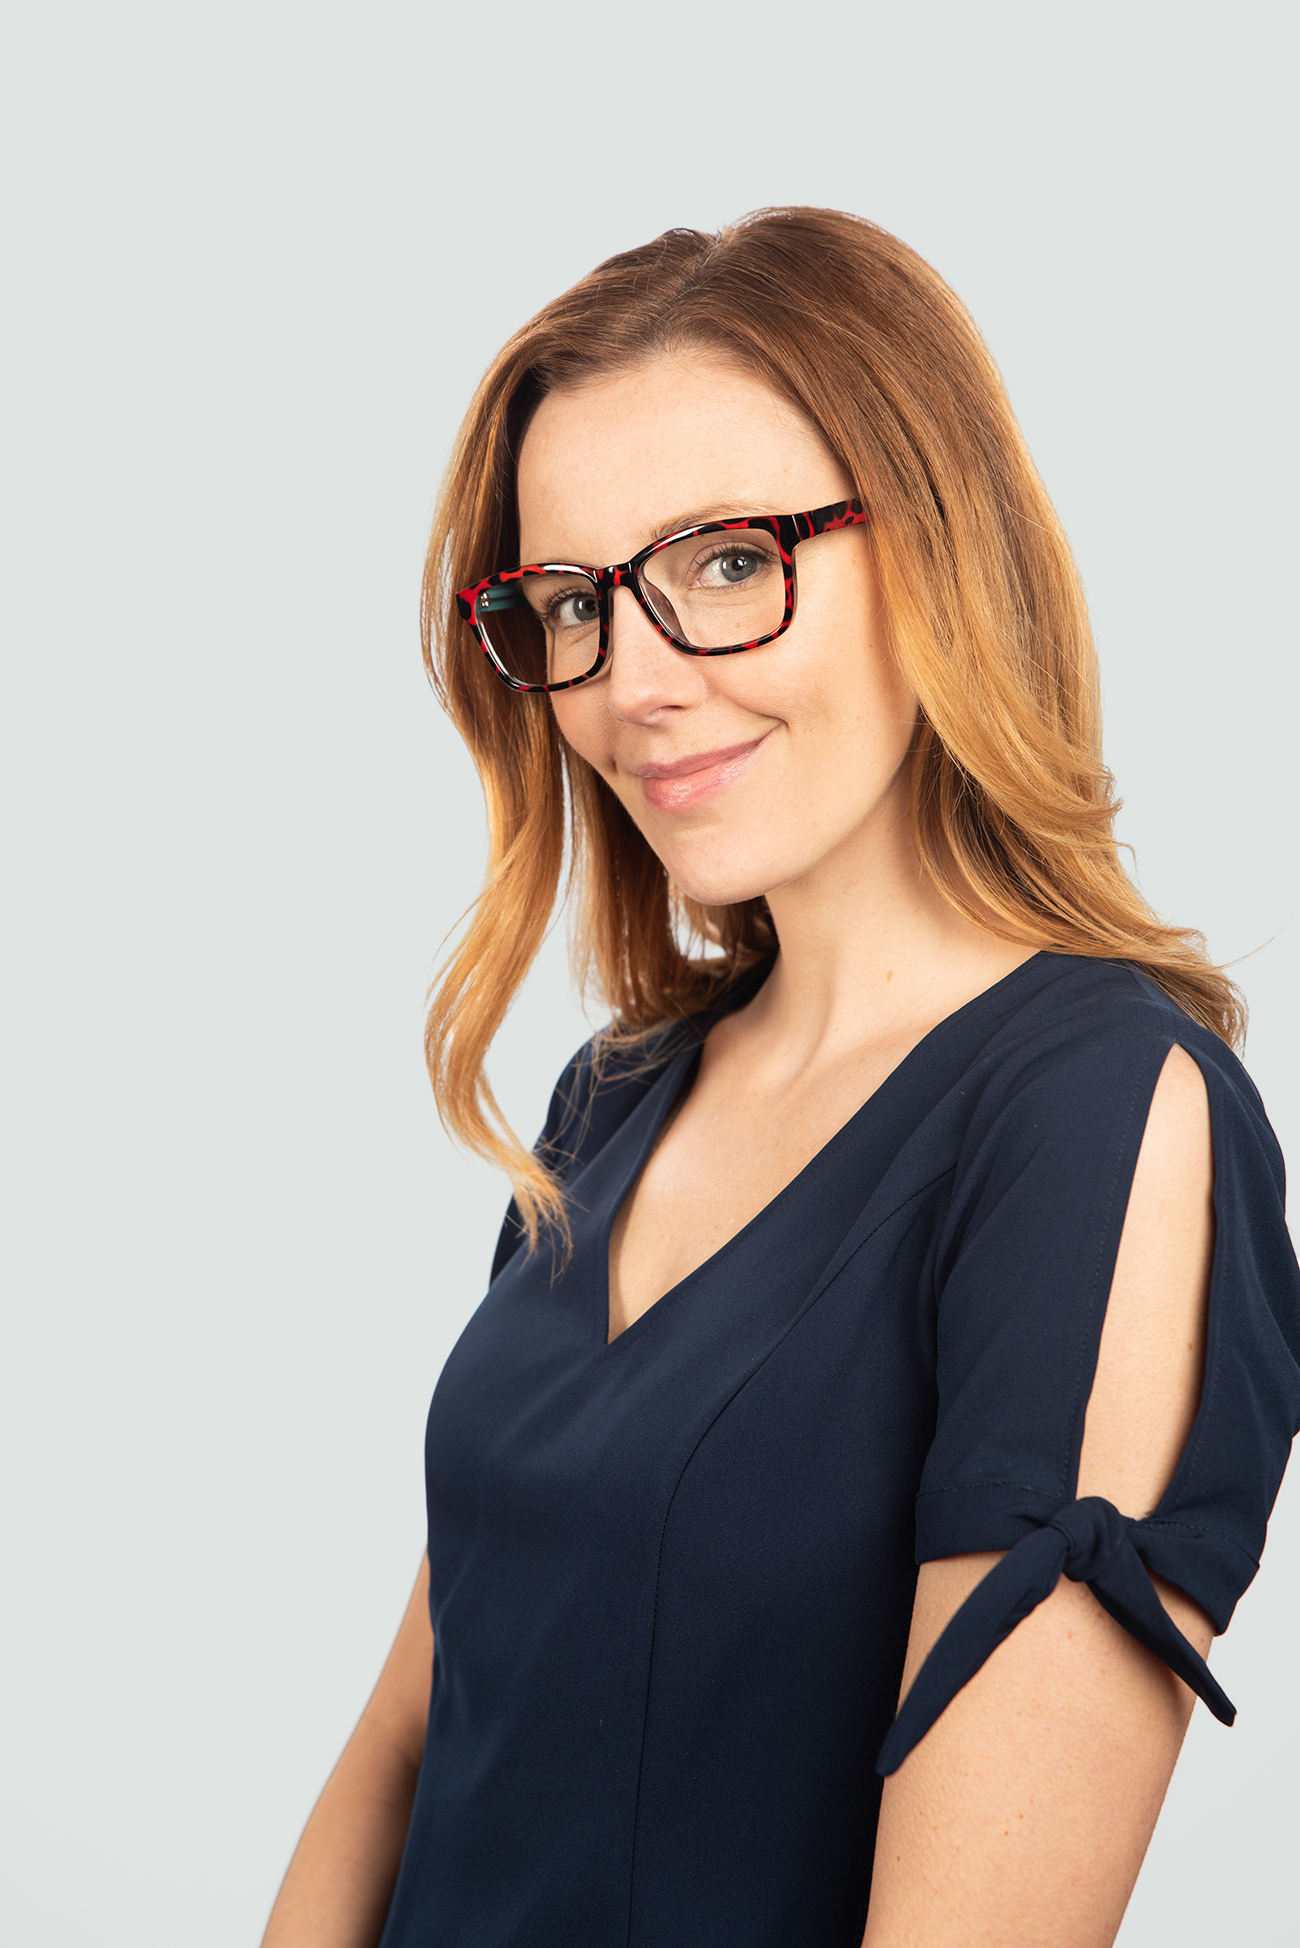 red head woman wearing black and red plastic glasses